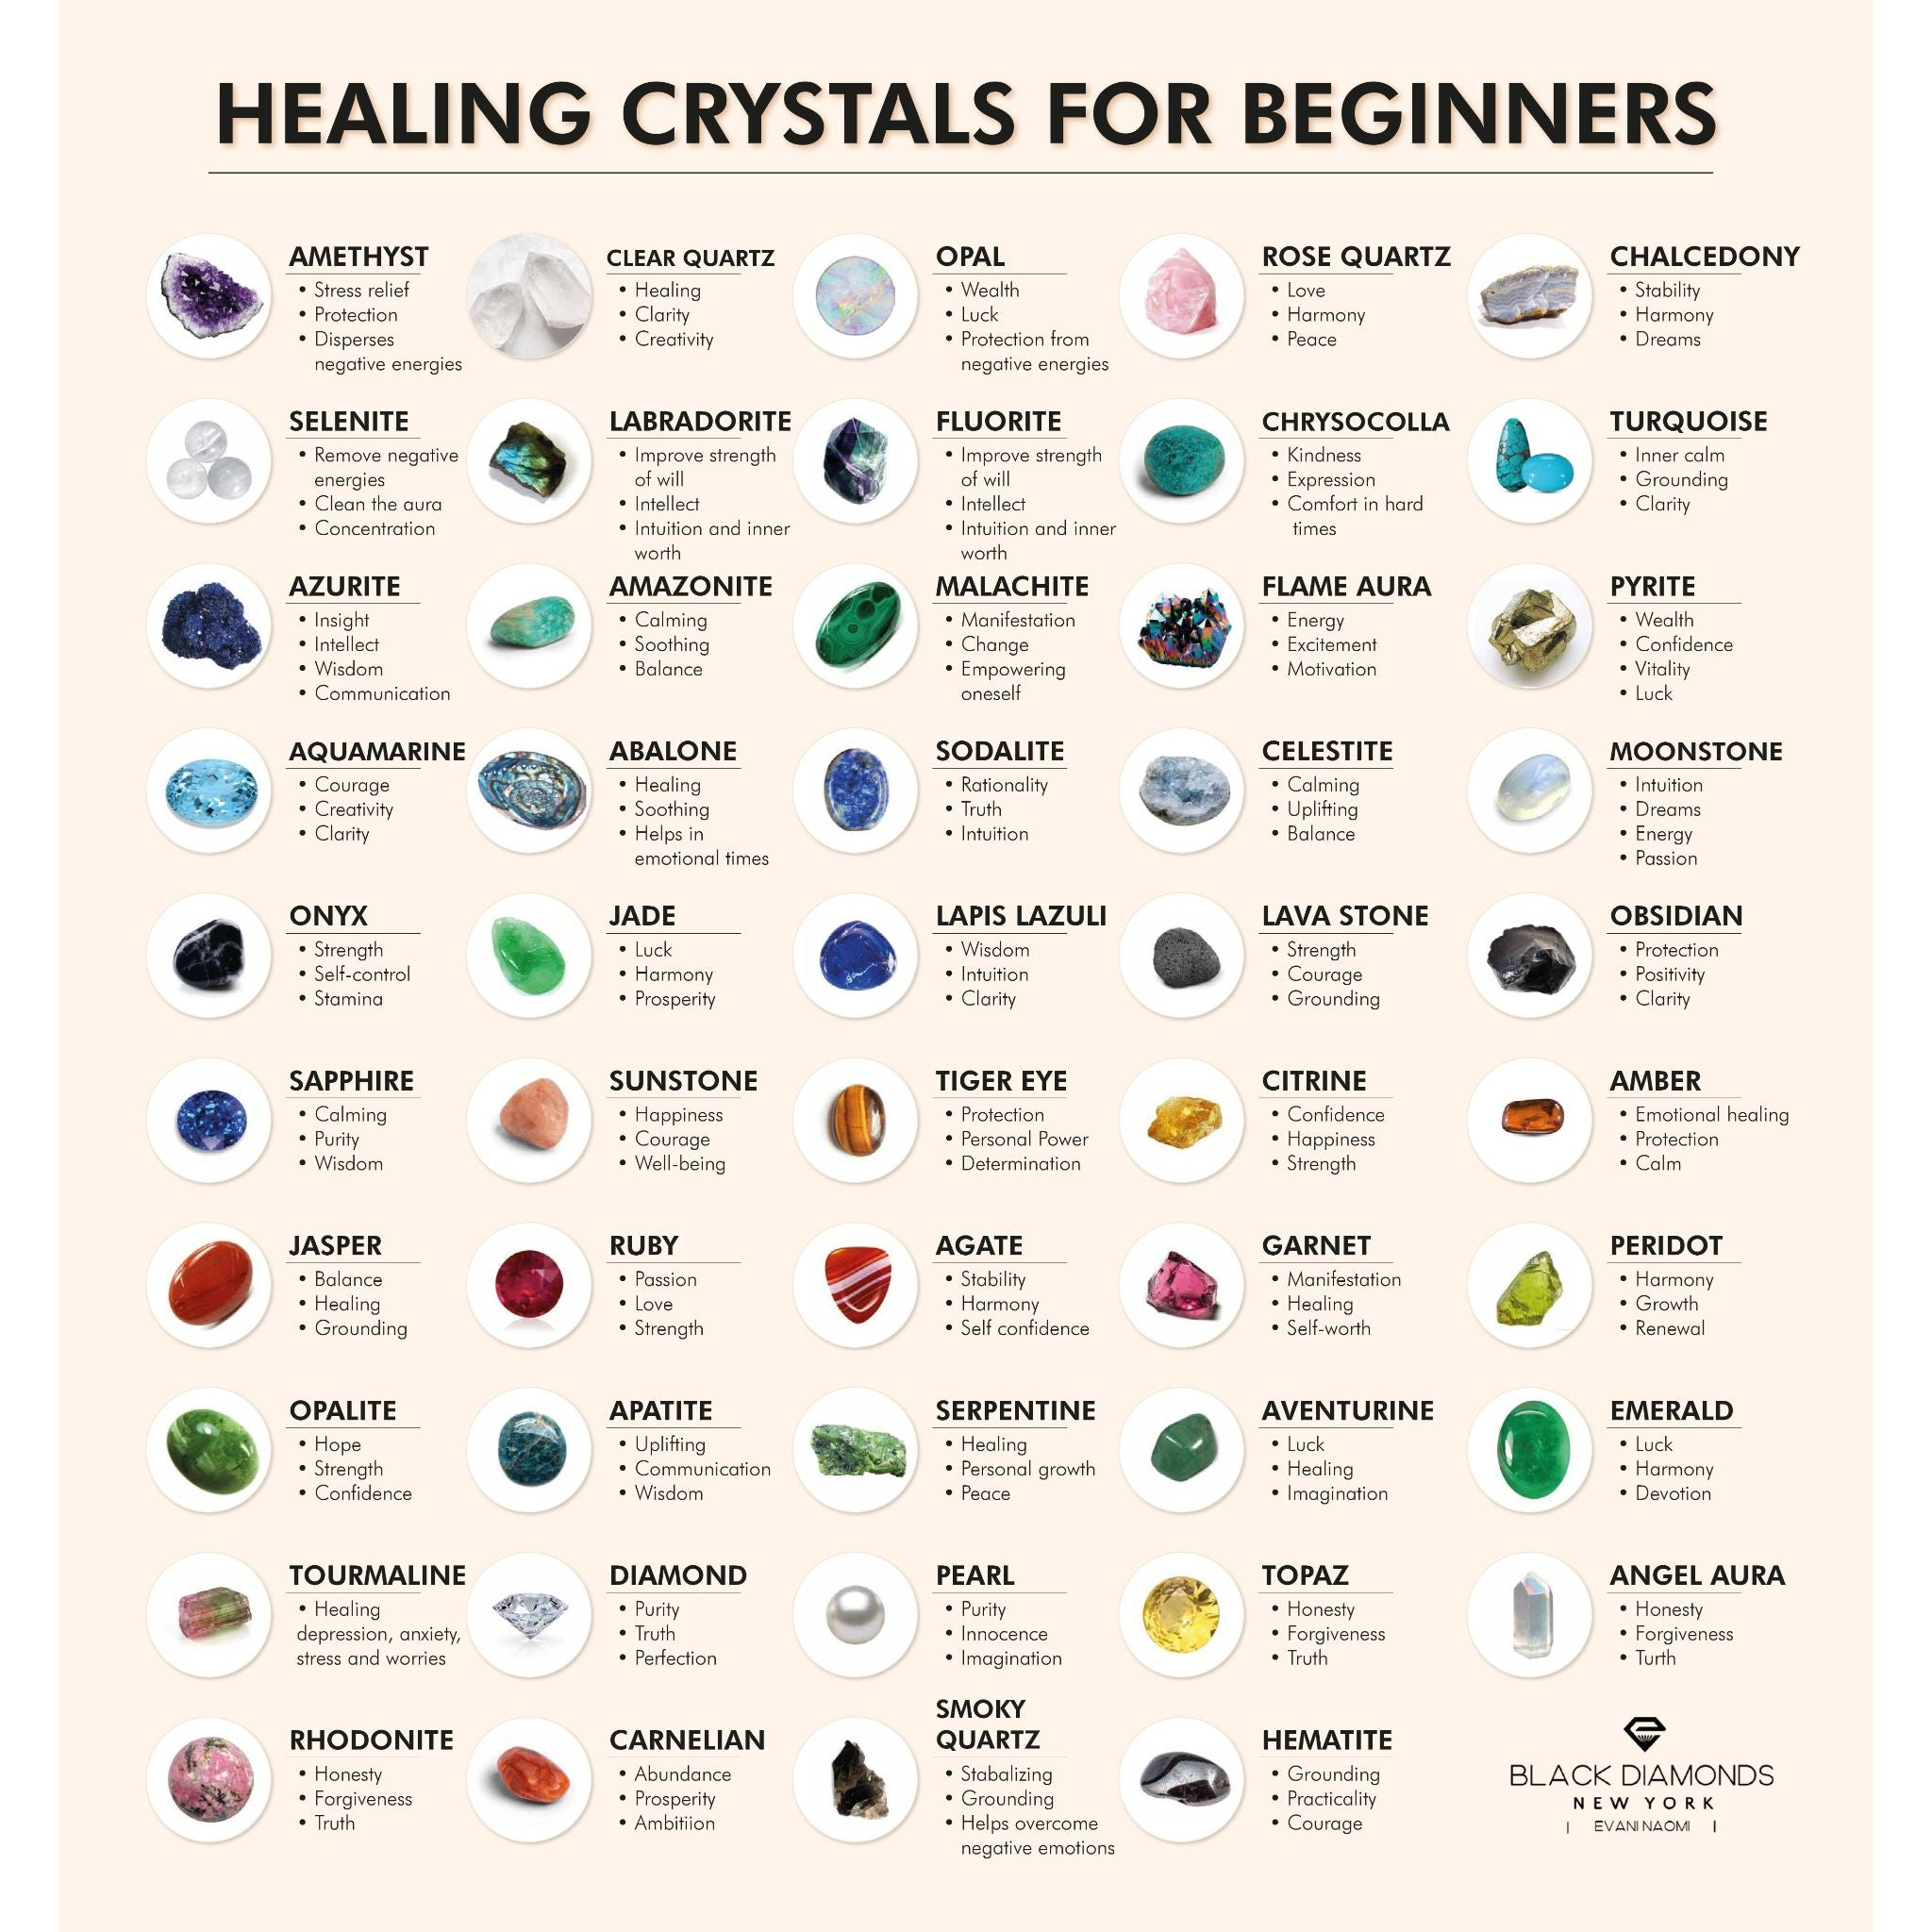 Healing Crystals & Benefits